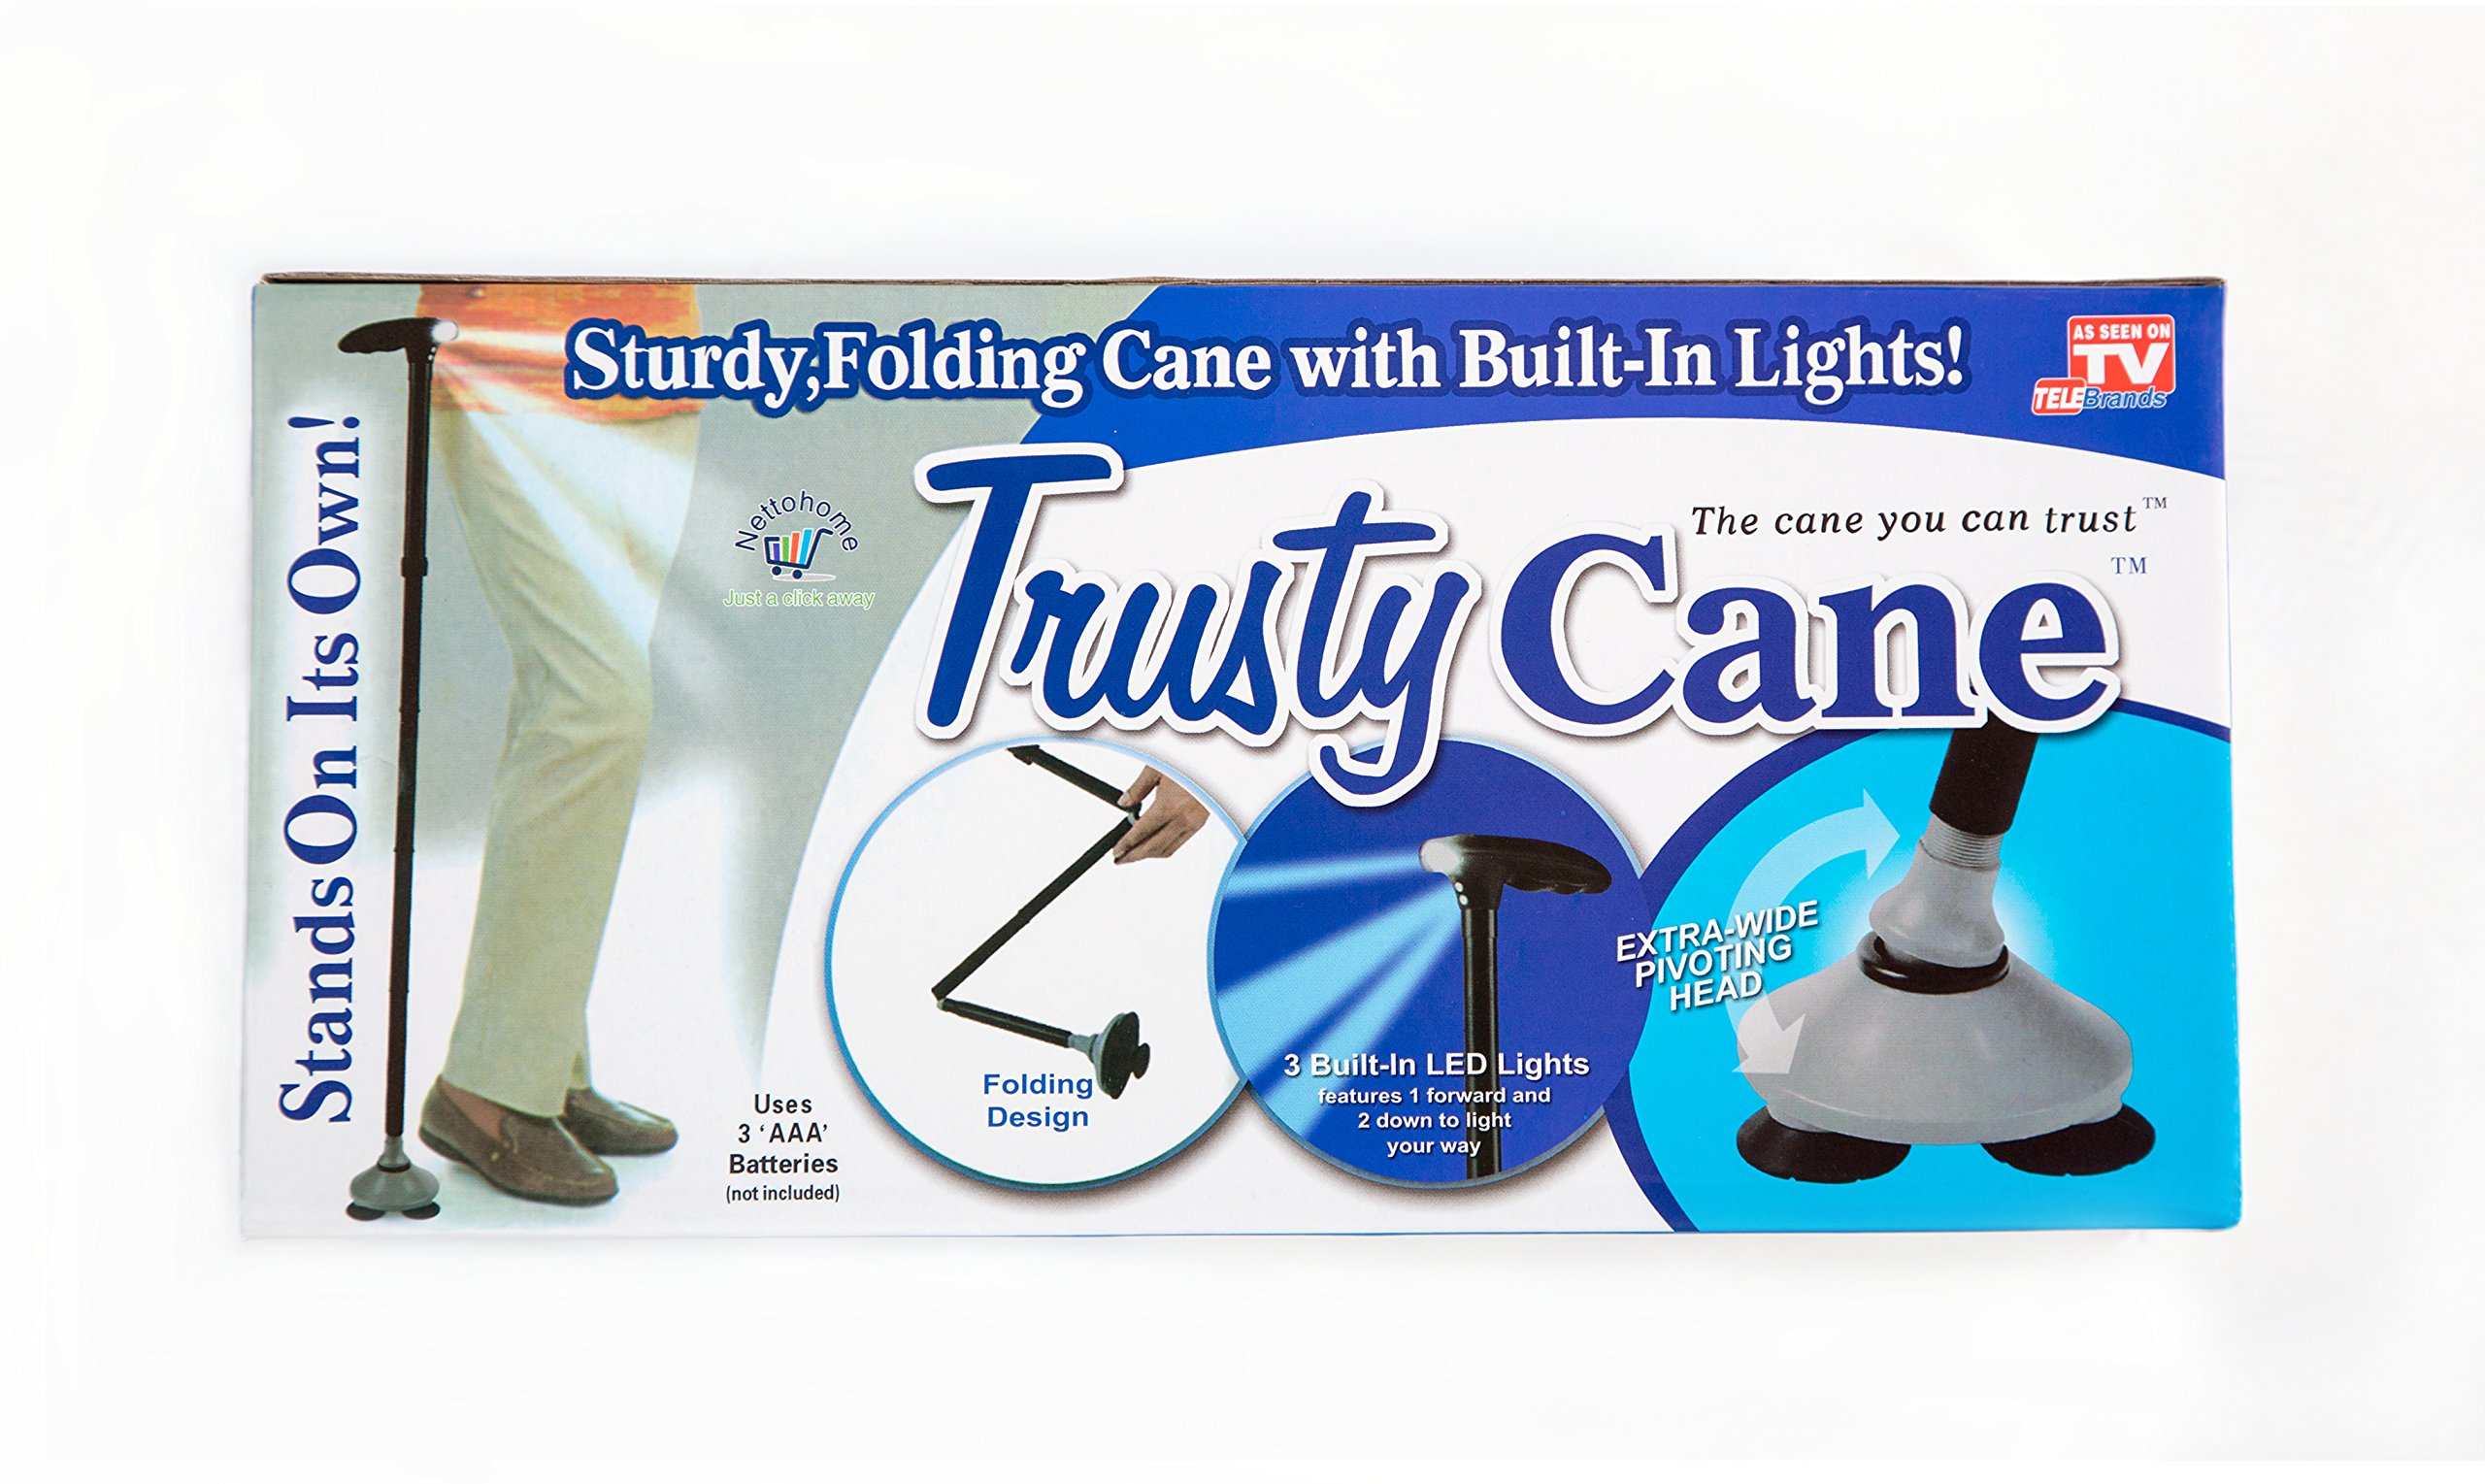 Trusty Cane adjusts folding in a hurry. Lightweight self standing for men women elderly 1.2 lbs. Mobile aid easy grip LED light for freedom independence Go Quadpad As seen on TV. Stable T handle Black